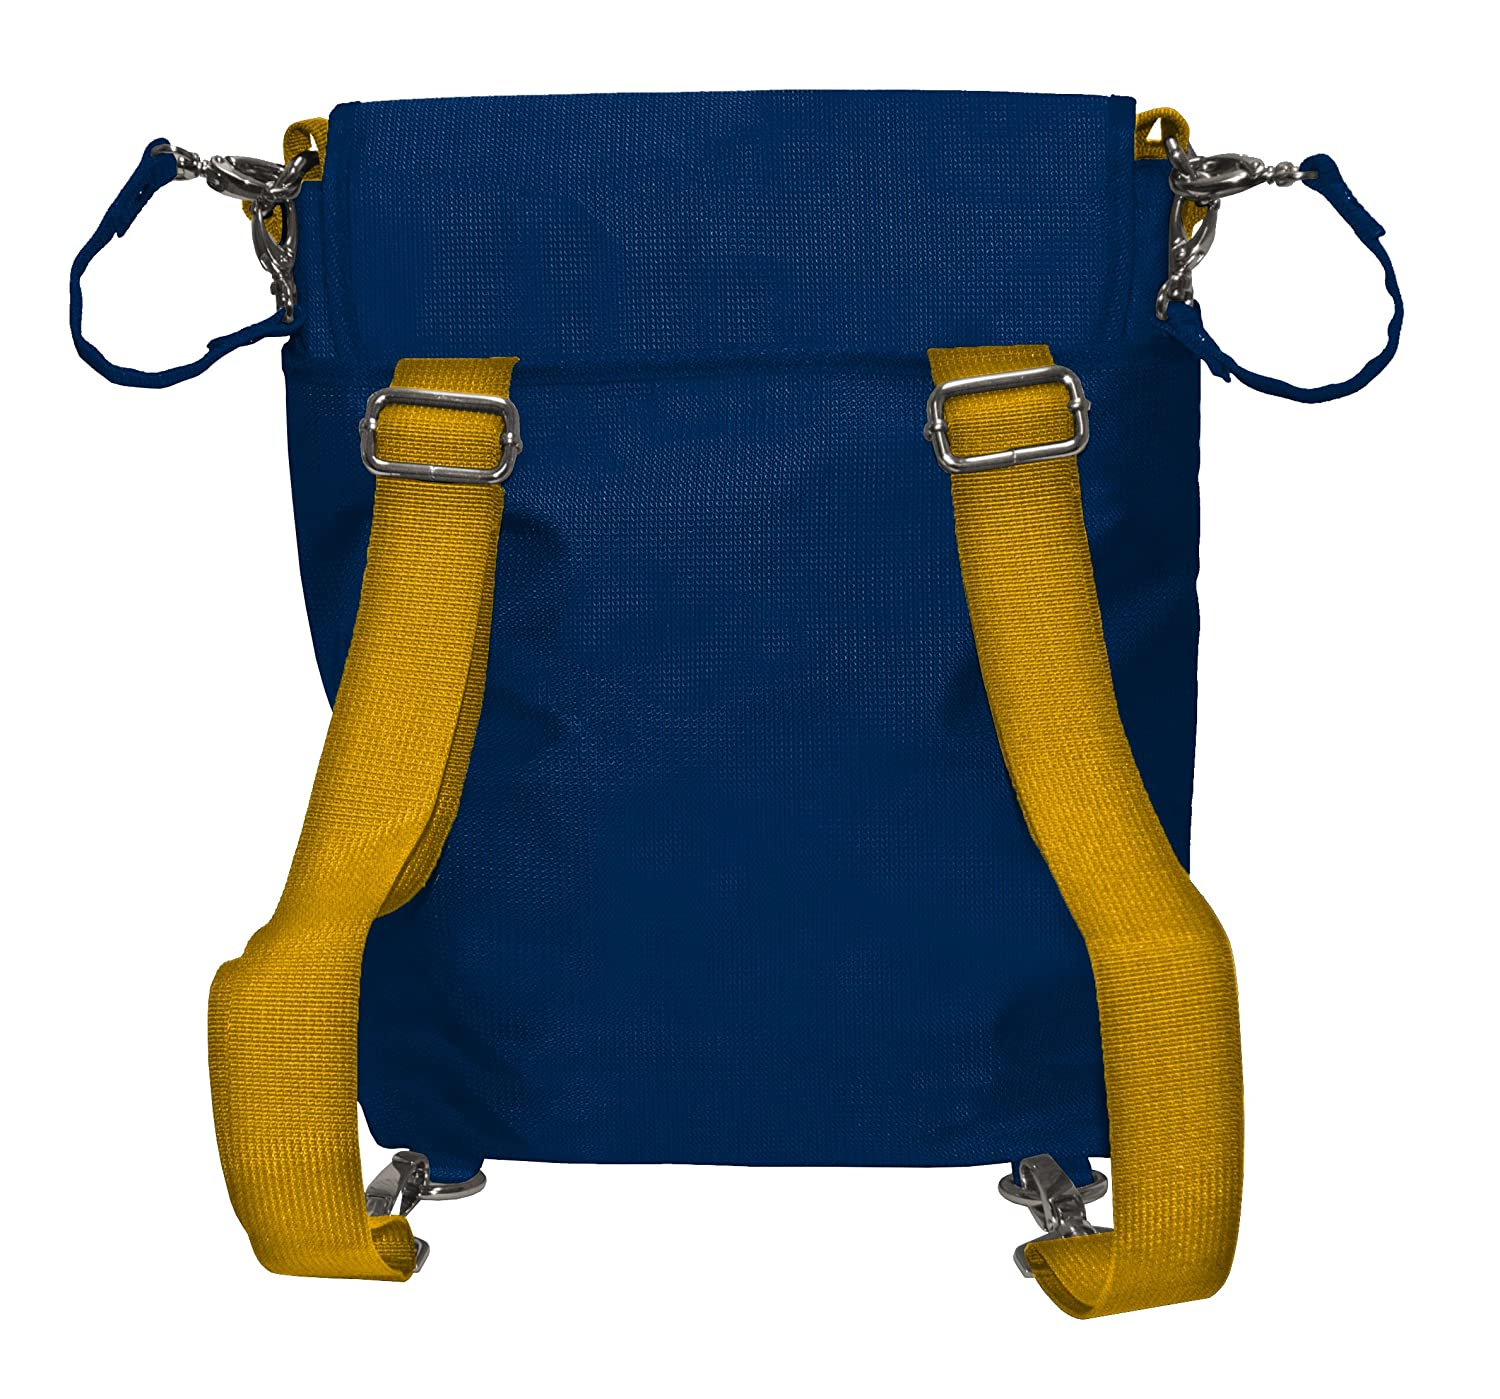 Wild Sports NCAA College West Virginia Mountaineers Messenger Diaper Bag 13.25 x 12.25 x 5.75-Inch Blue